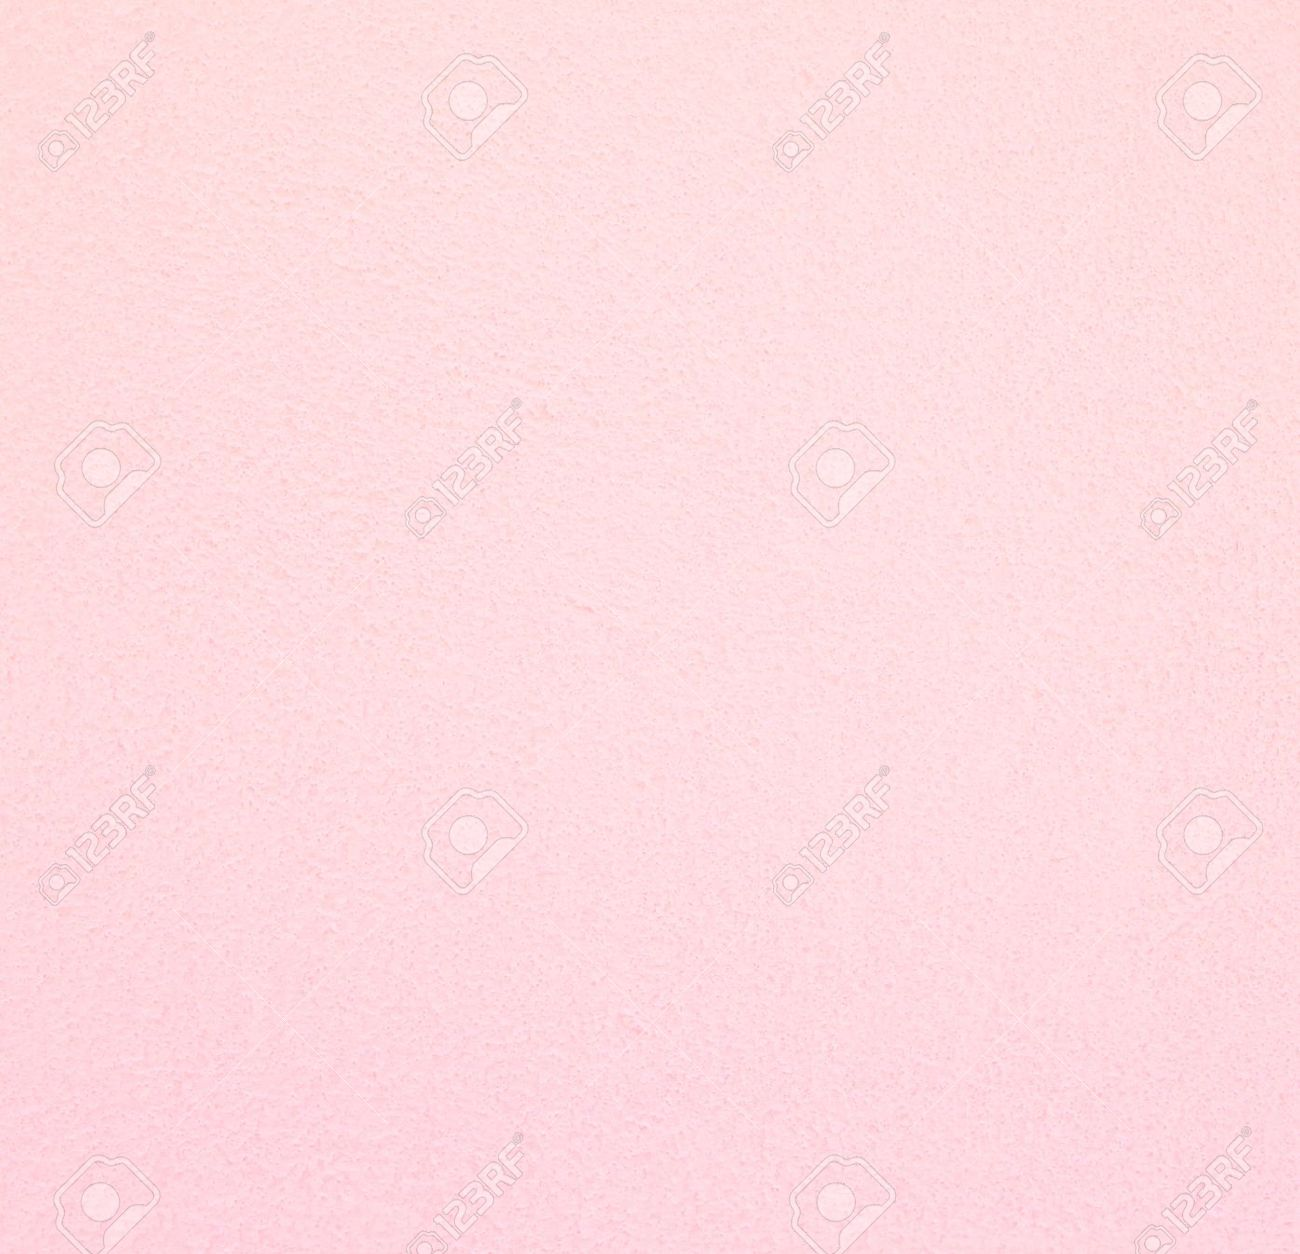 smudge pastel pink wall or paper textured background Stock Photo - 13302058